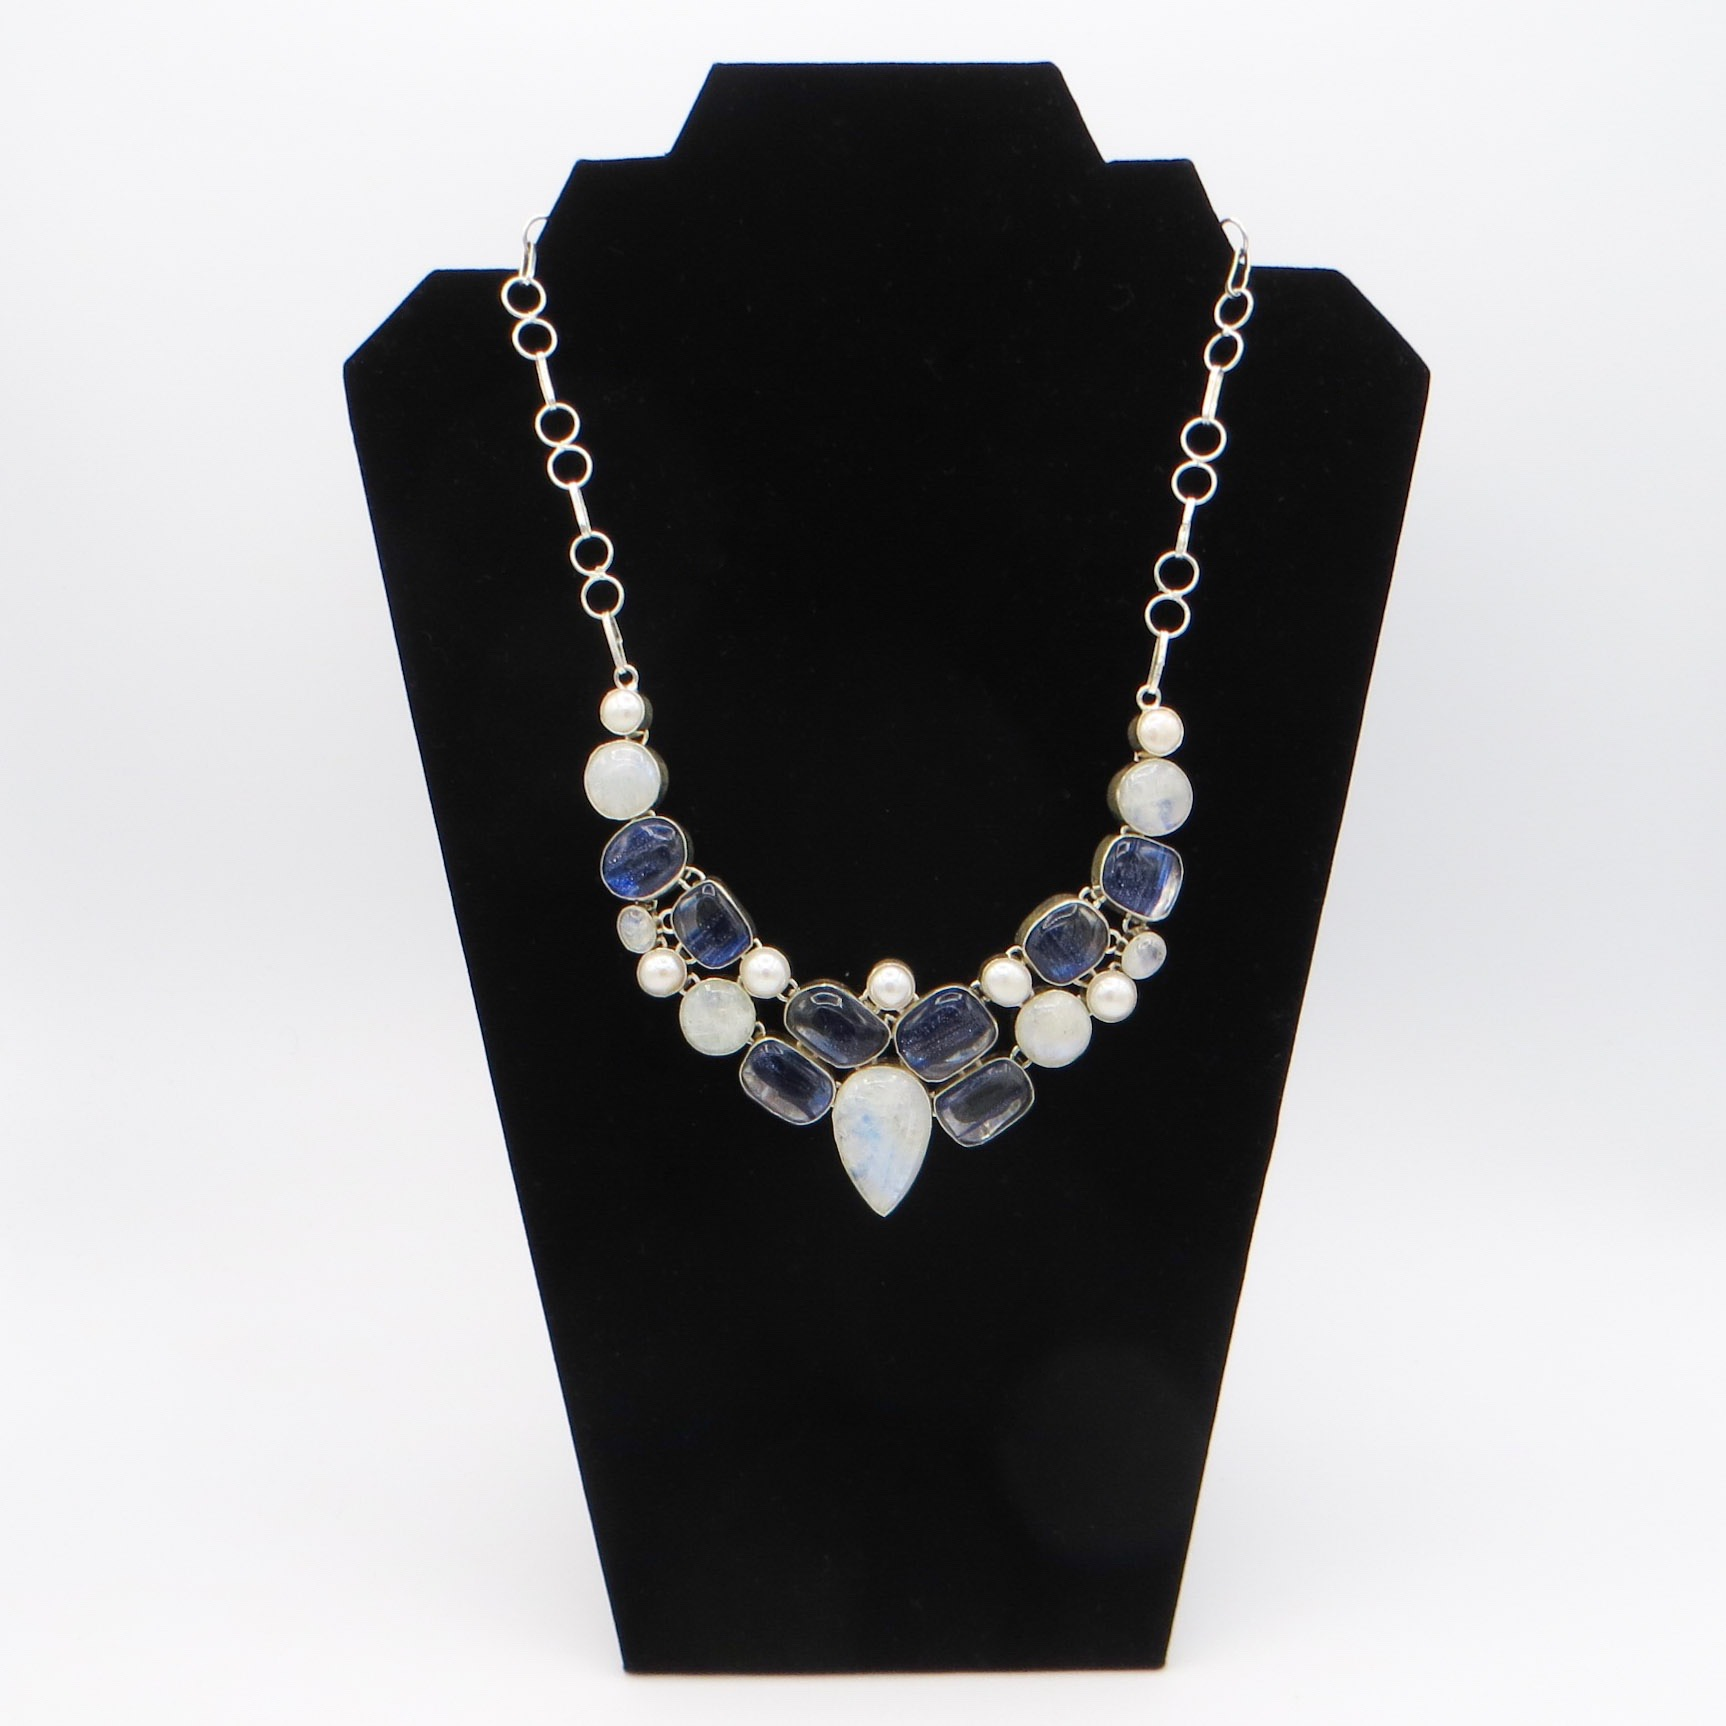 Moonstone and Murano Glass Necklace